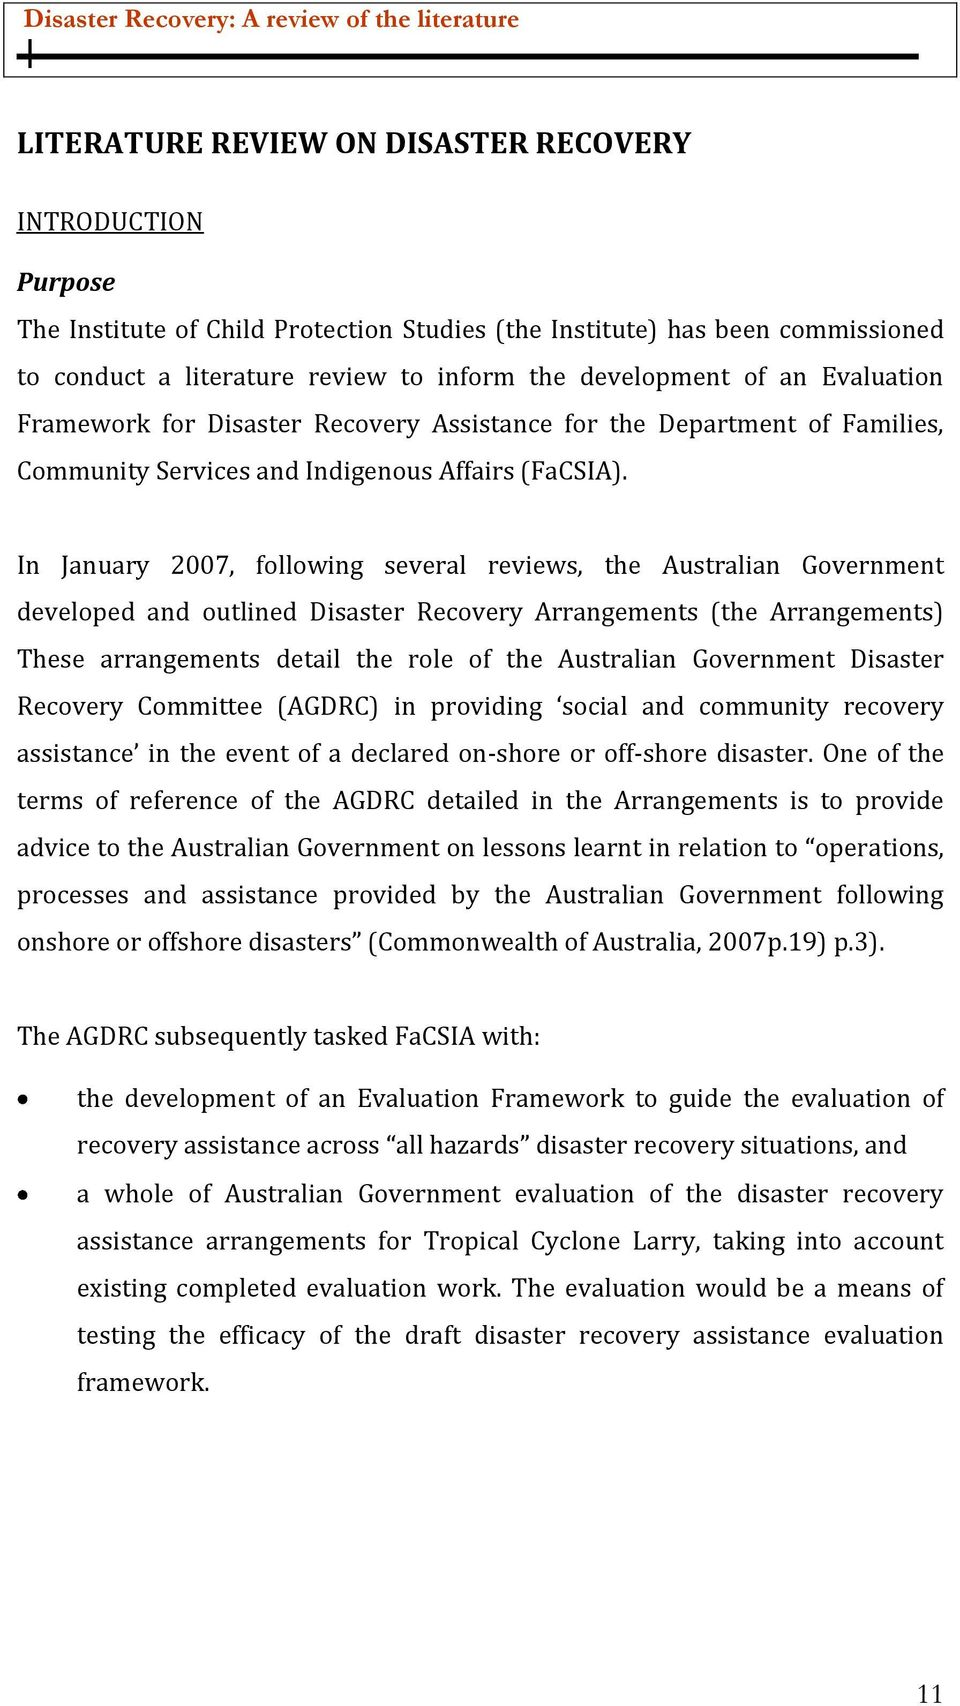 In January 2007, following several reviews, the Australian Government developed and outlined Disaster Recovery Arrangements (the Arrangements) These arrangements detail the role of the Australian